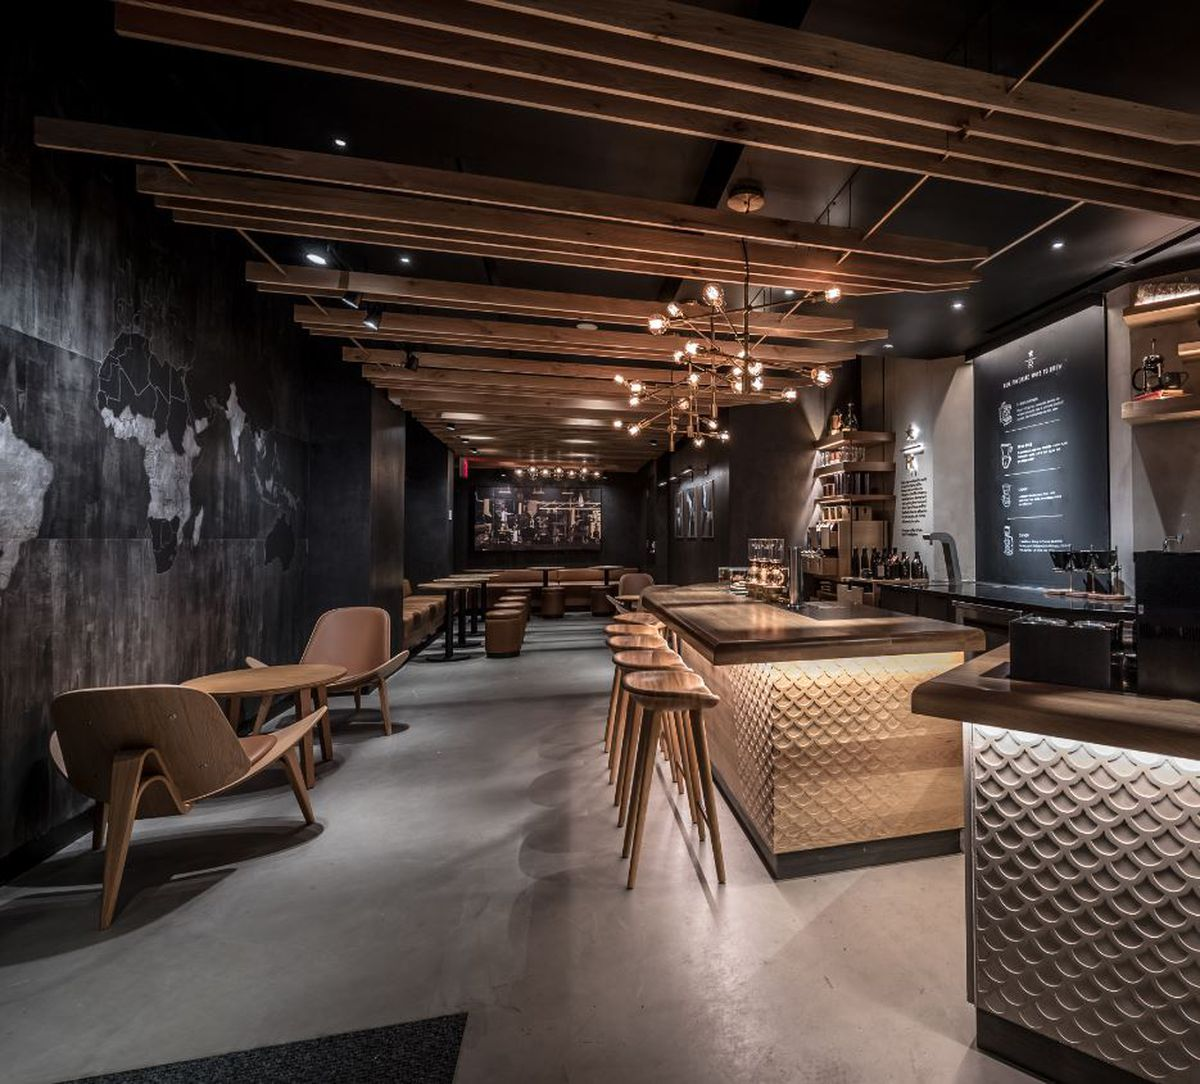 7474 Best Images About Cafes Coffee Shops Bar: Starbucks Hopes To Win Over Coffee Snobs With More Fancy